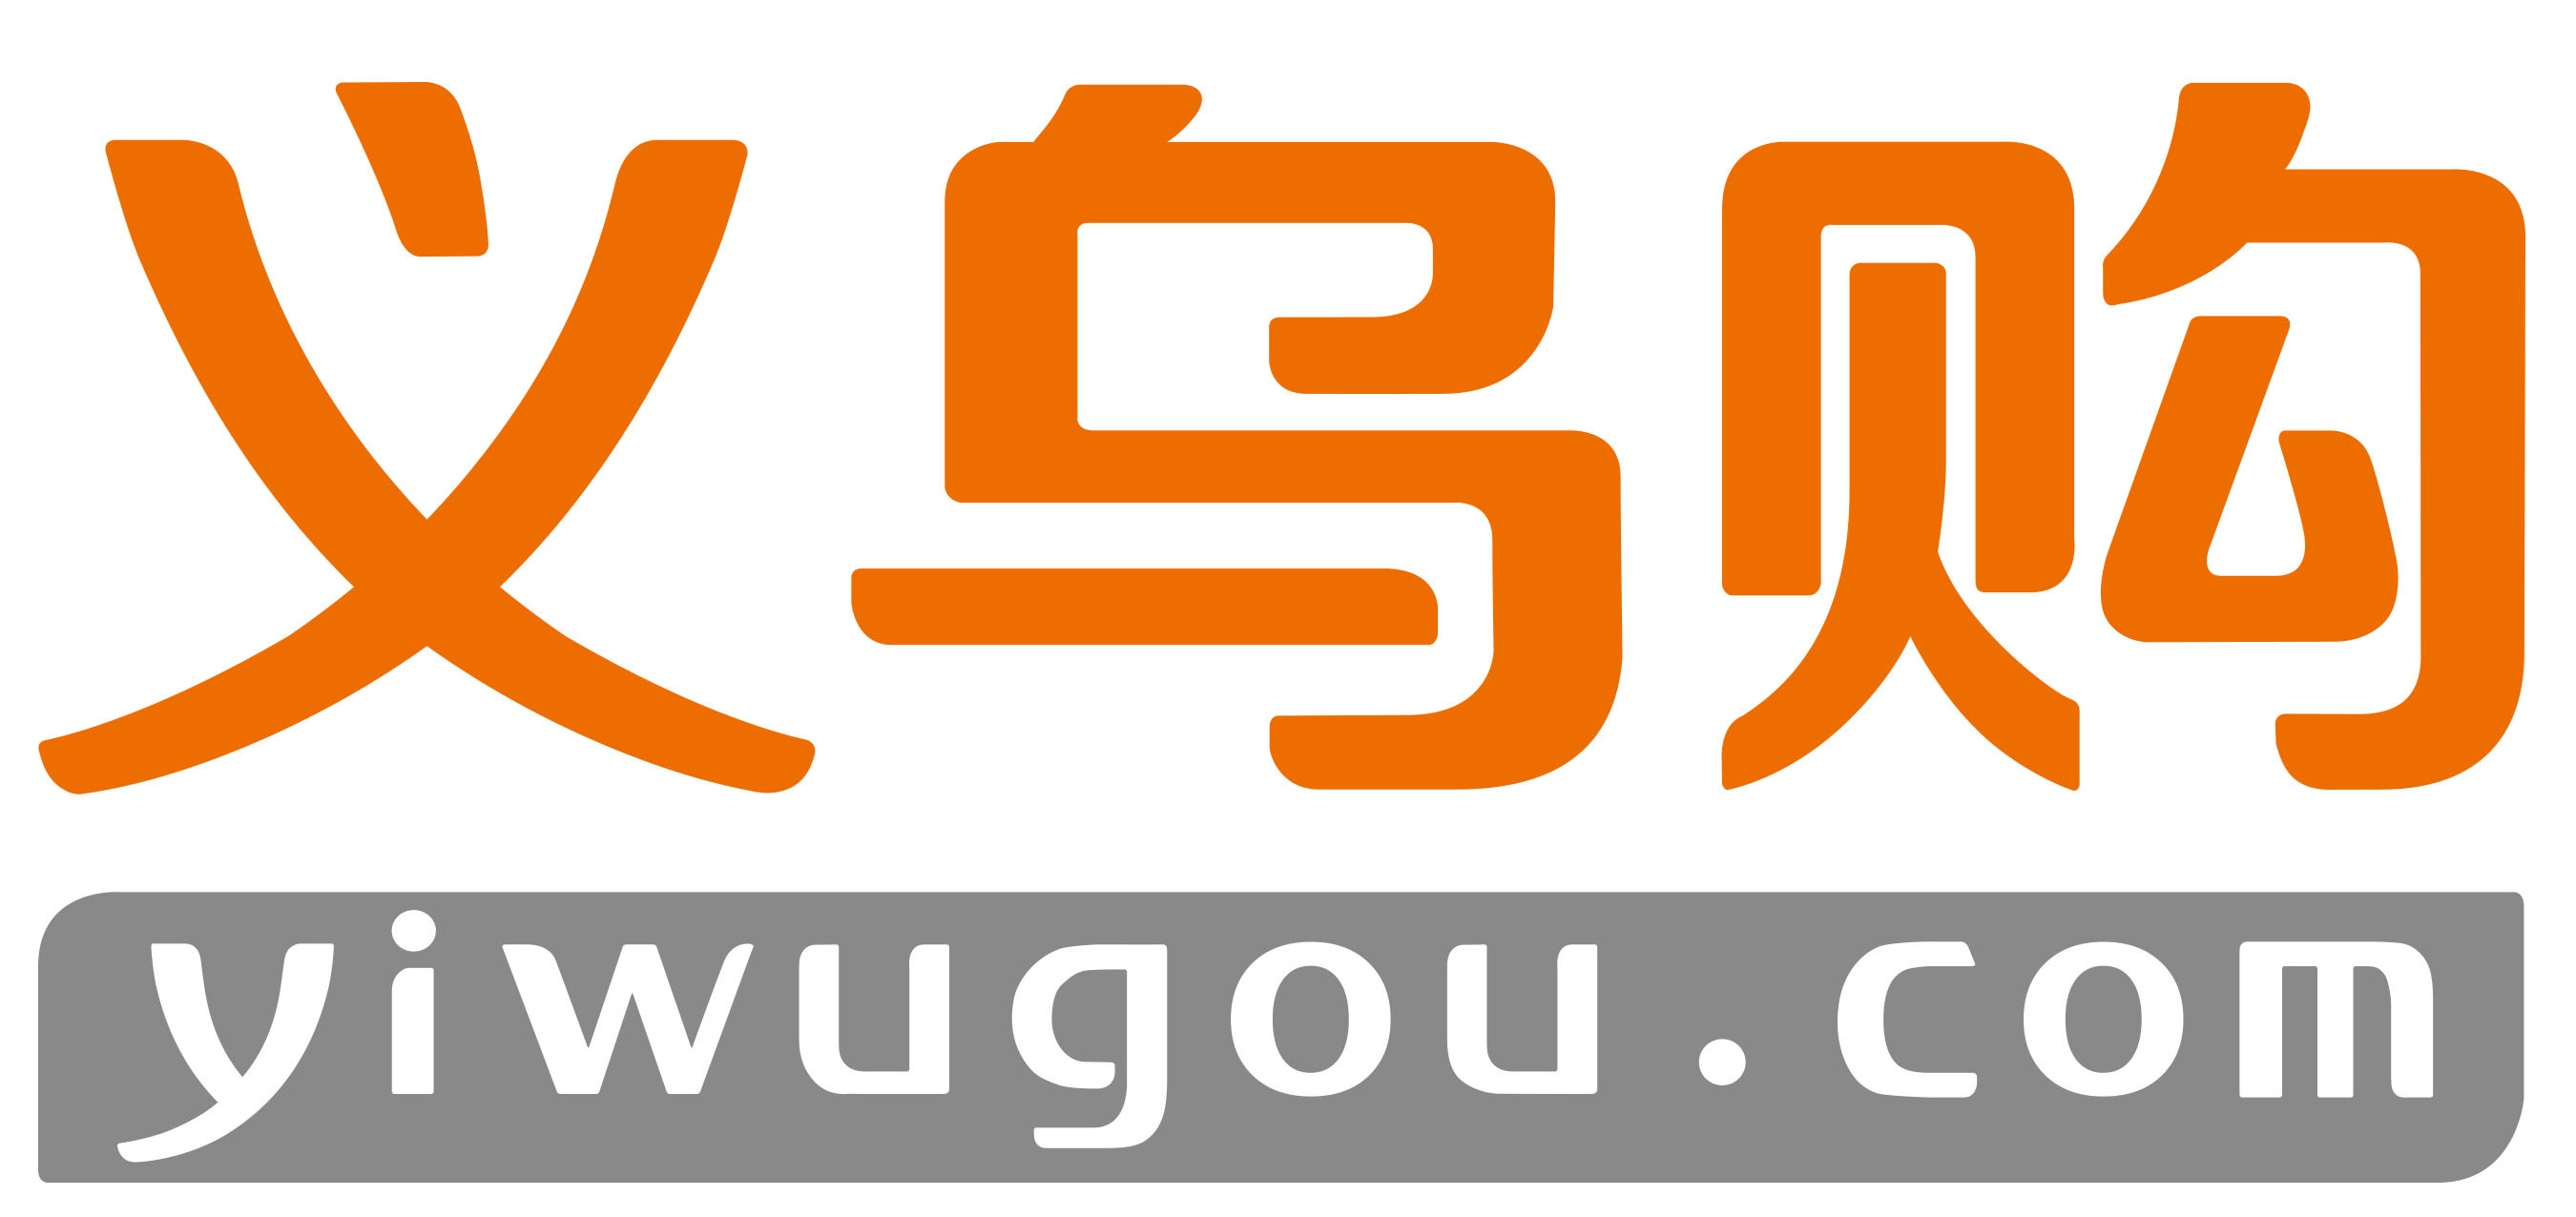 Yiwugou.com's Gross Merchandise Volume Exceeded RMB 4 billion in 2015